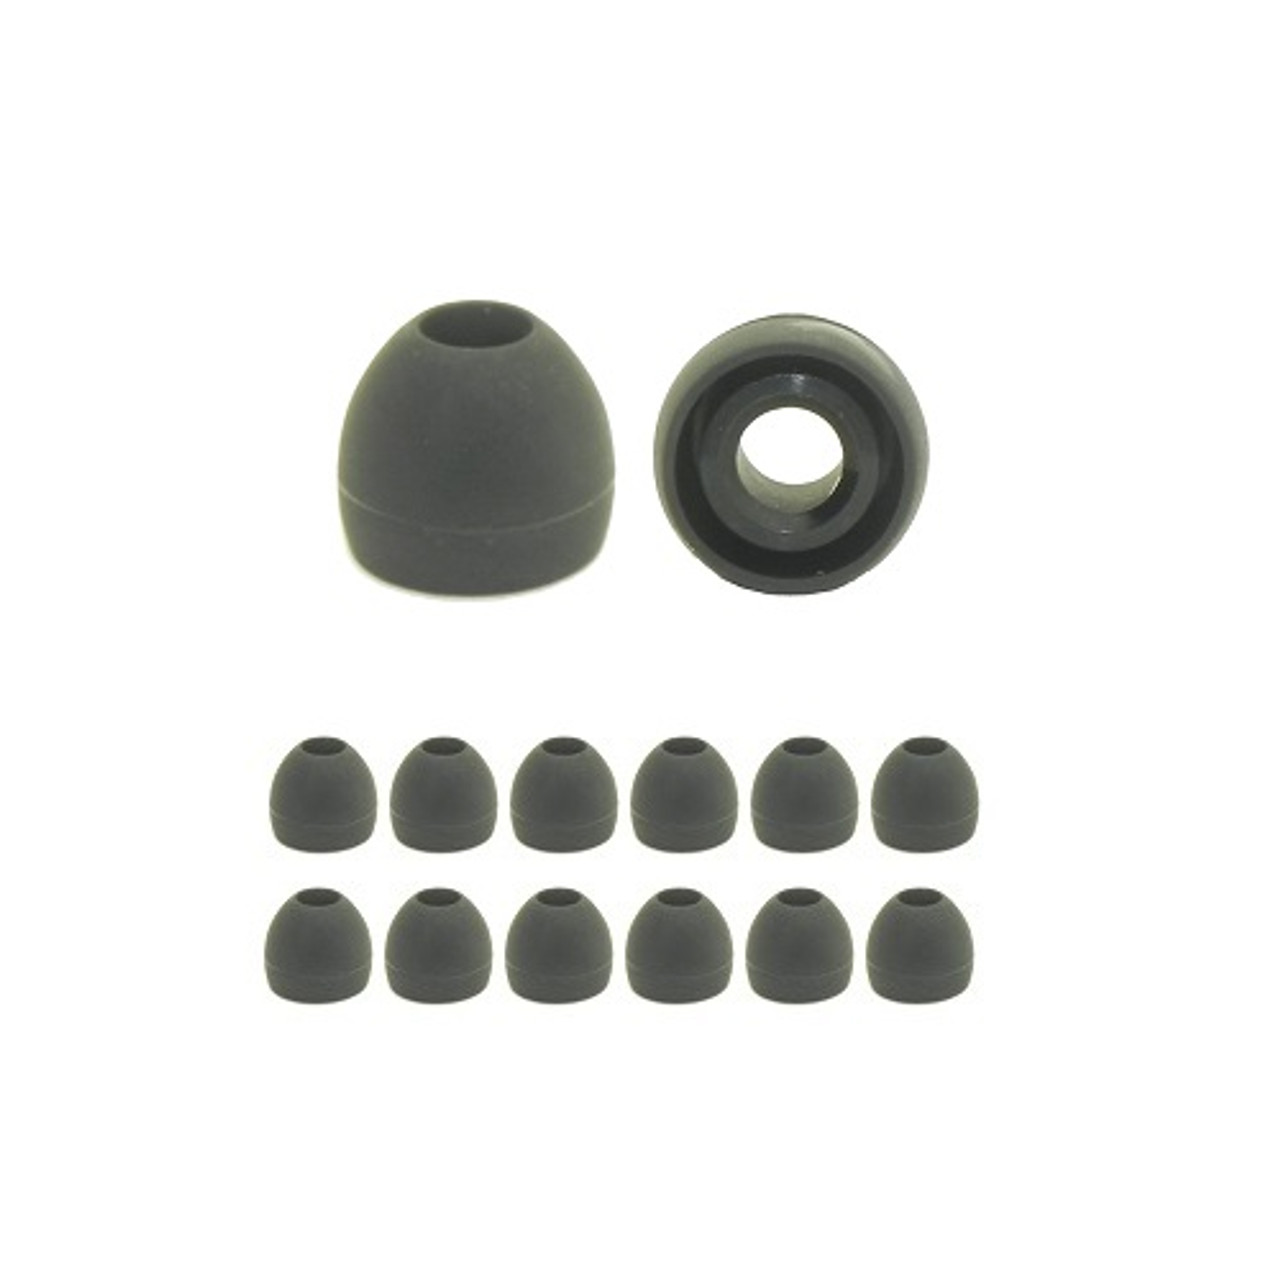 Samsung extra small earbuds